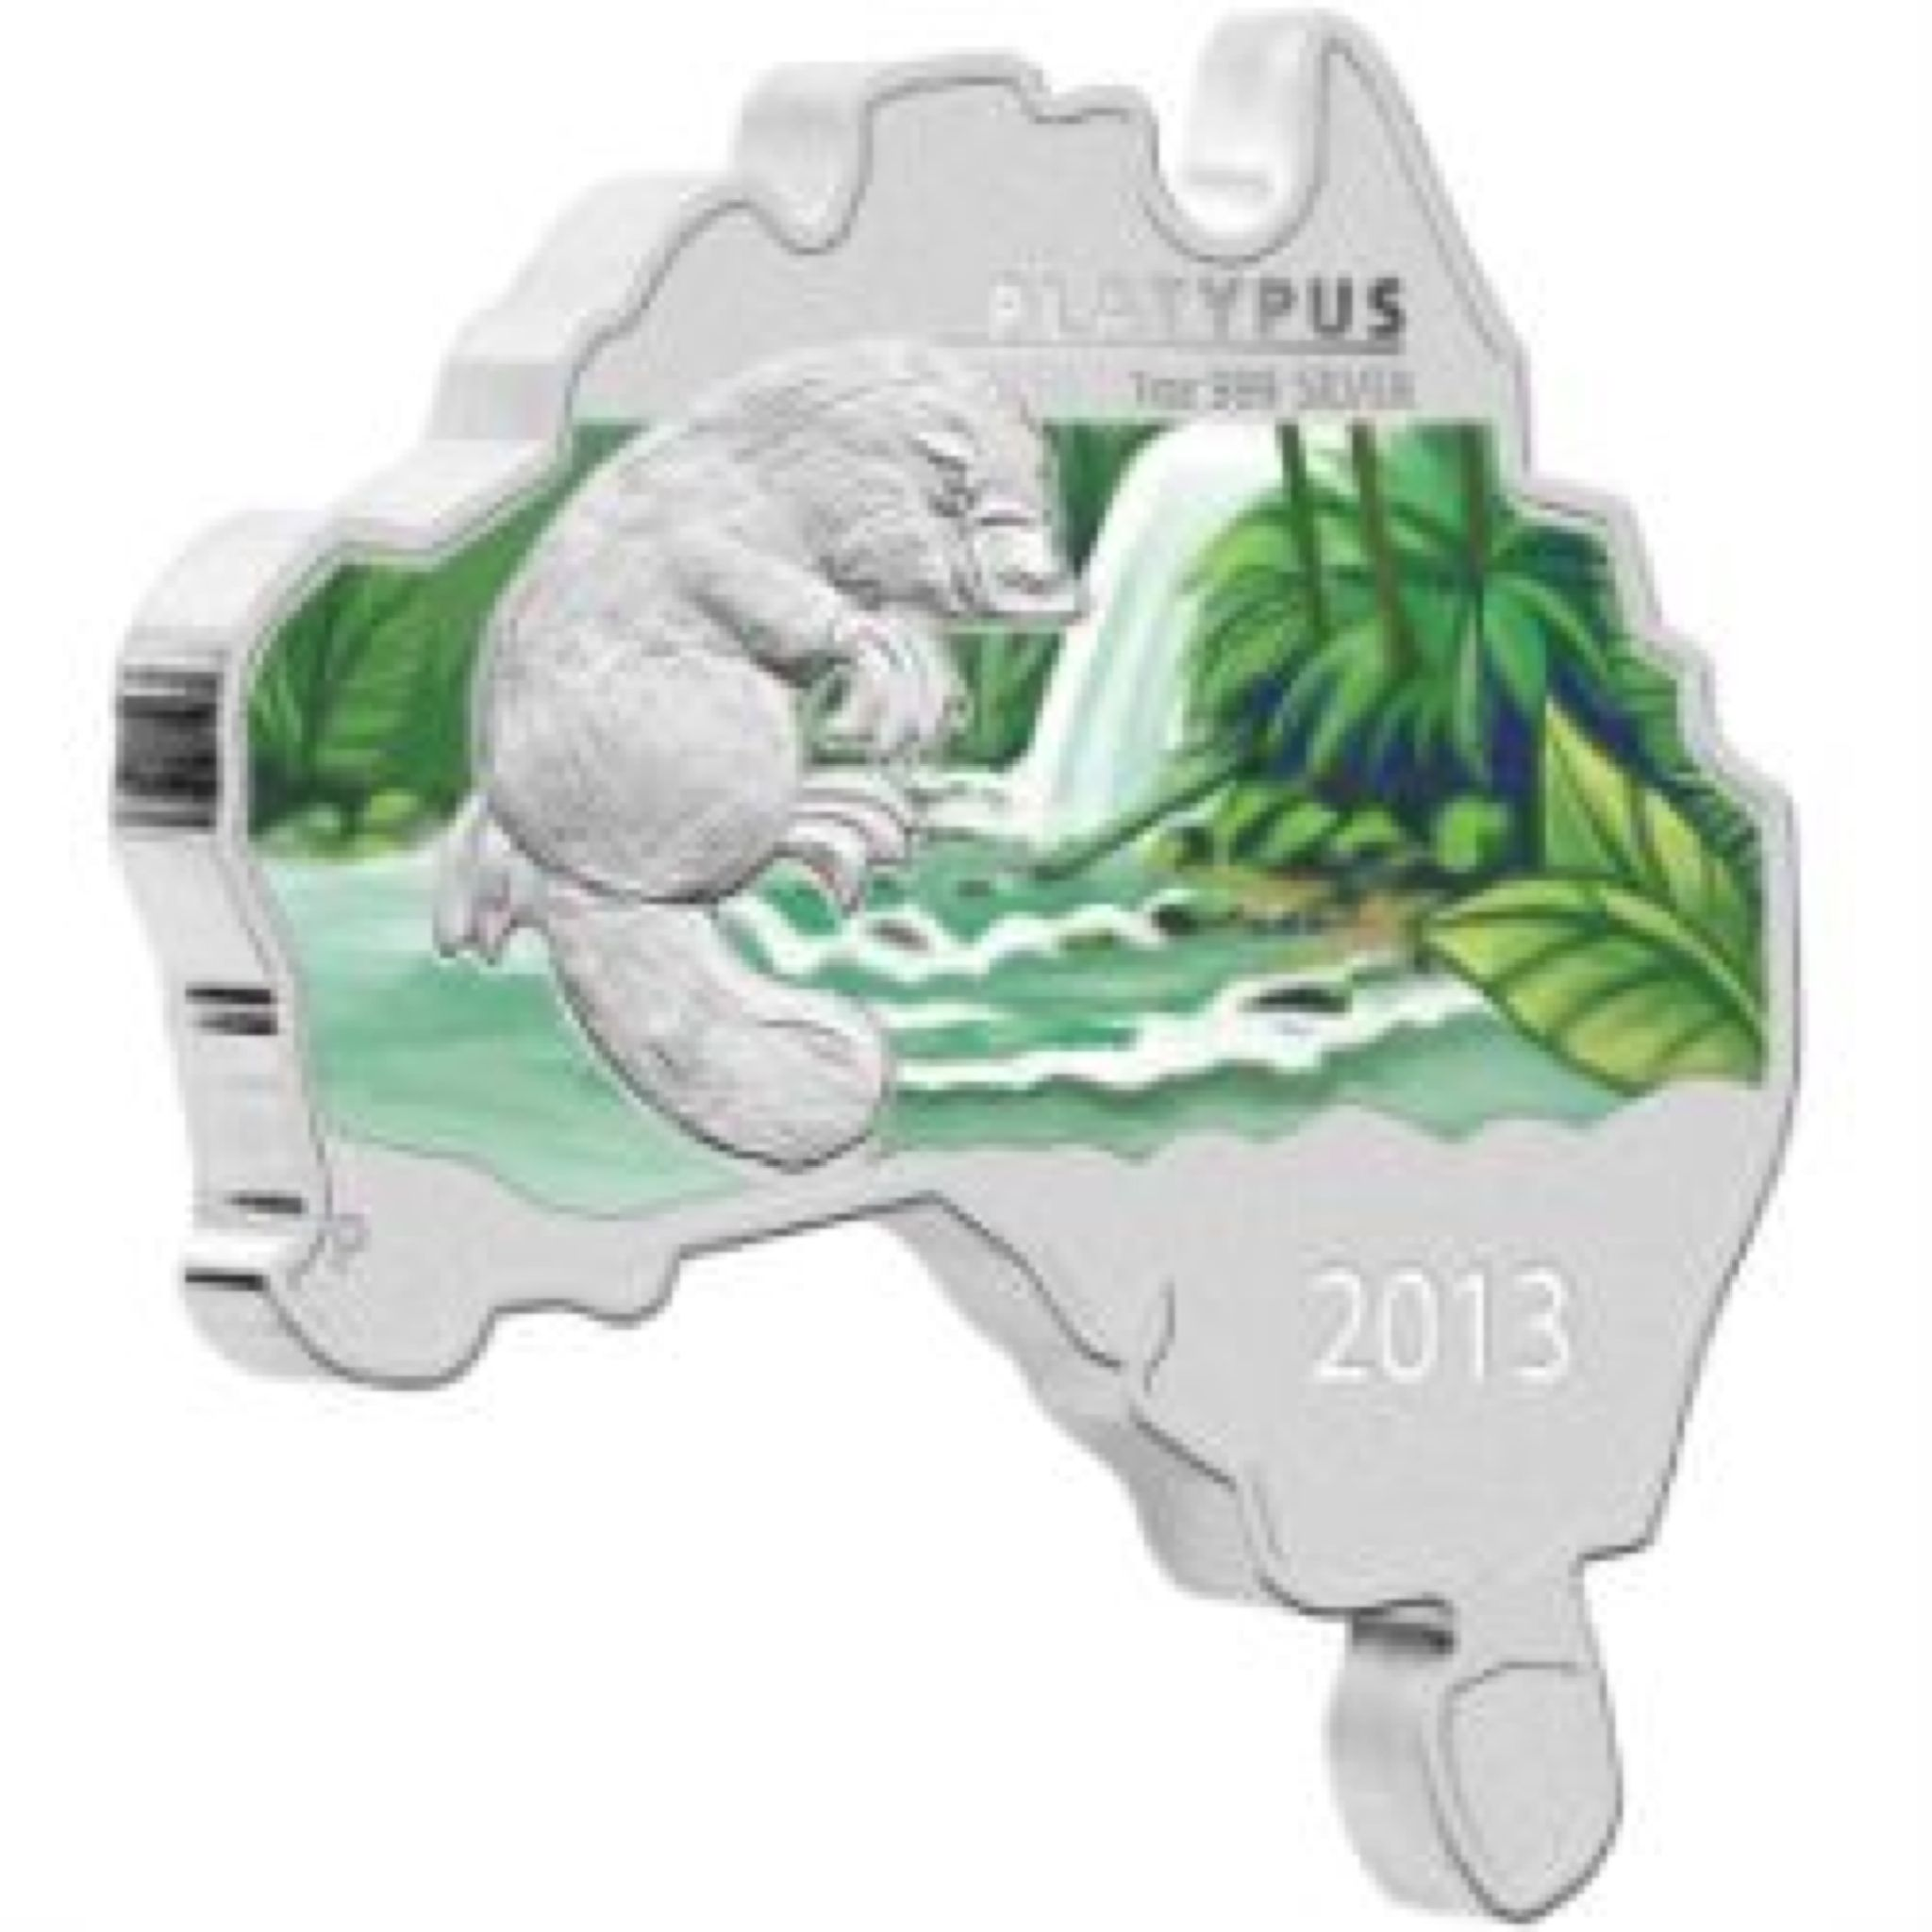 2013 Platypus 1oz Map Shape Coin - $1 (2013) front image (front cover)